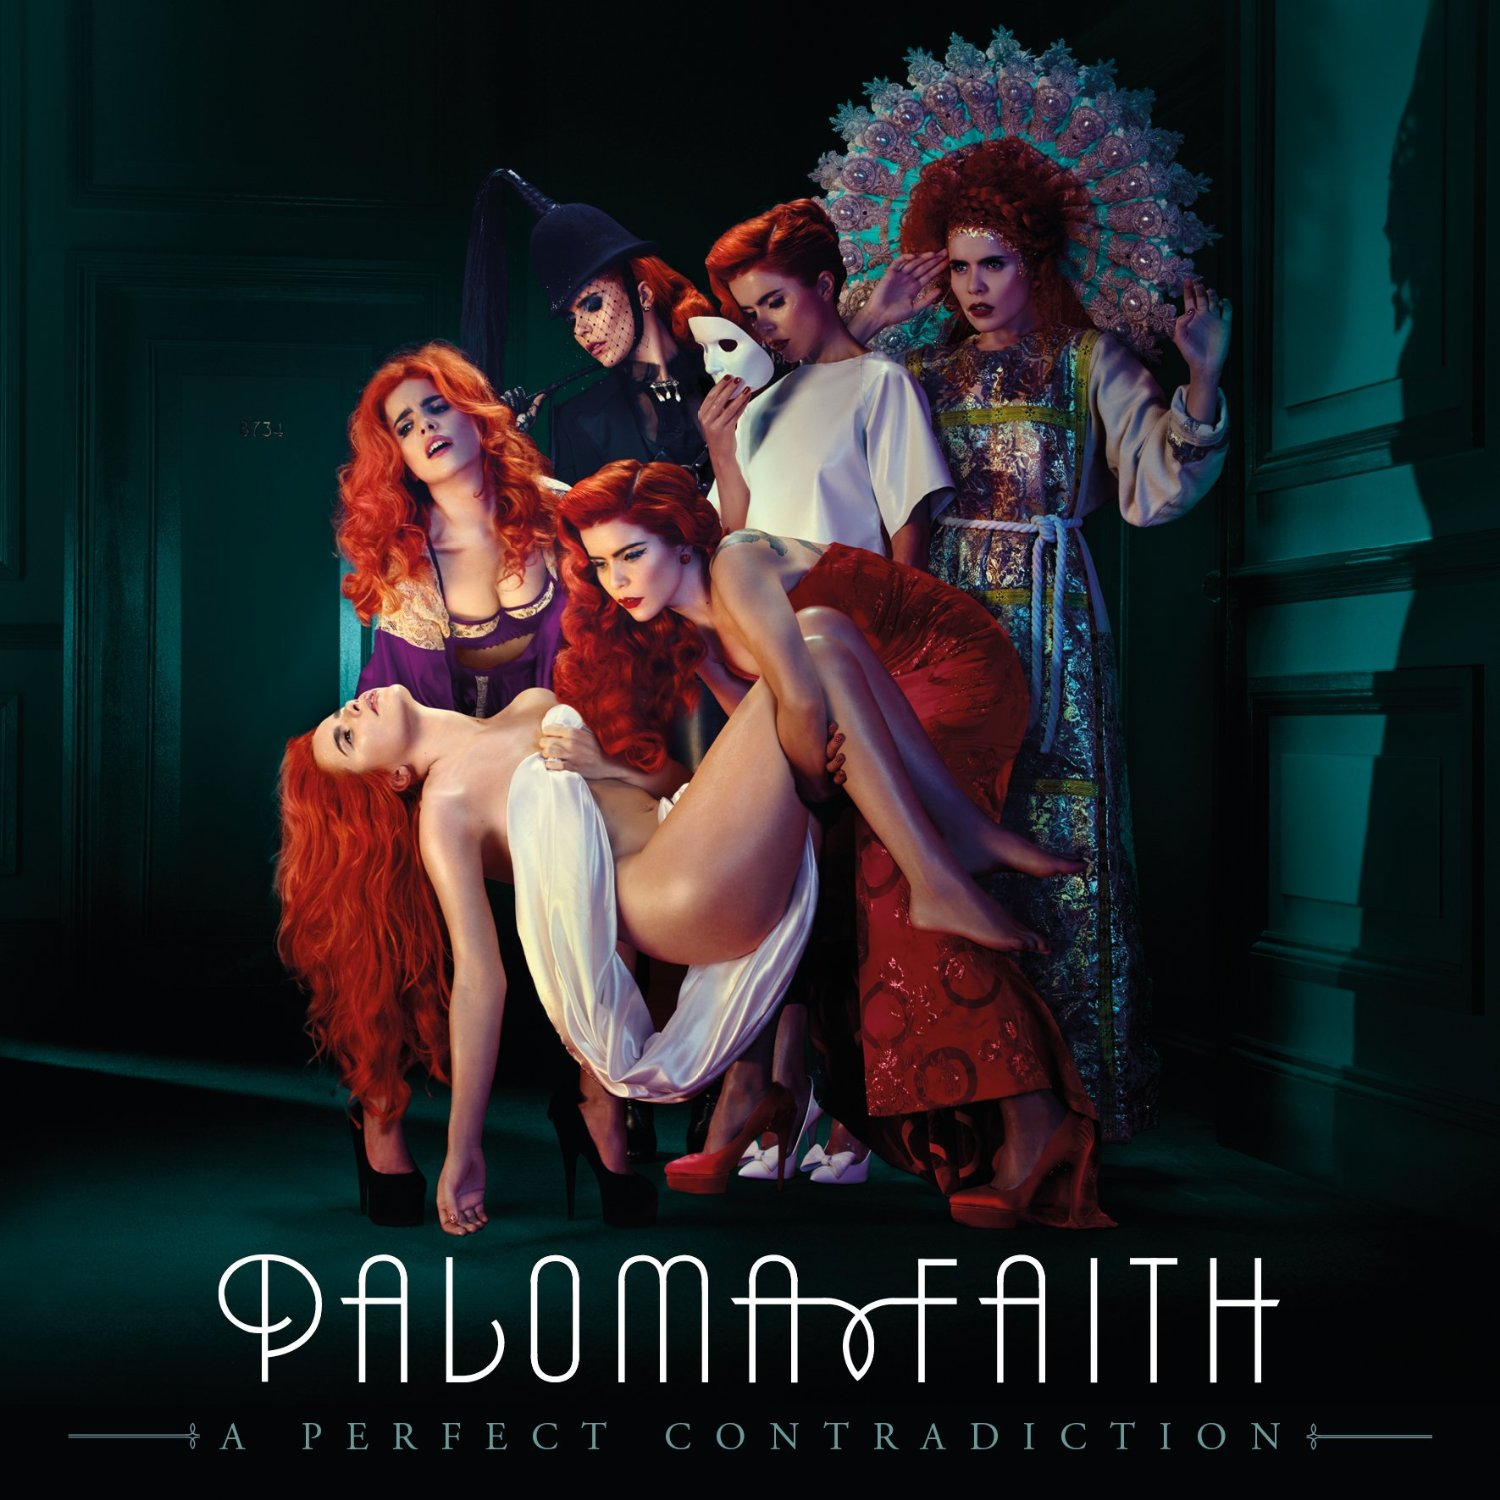 Paloma Faith's album, 'A Perfect Contradiction', awarded BPI 2 x Platinum.